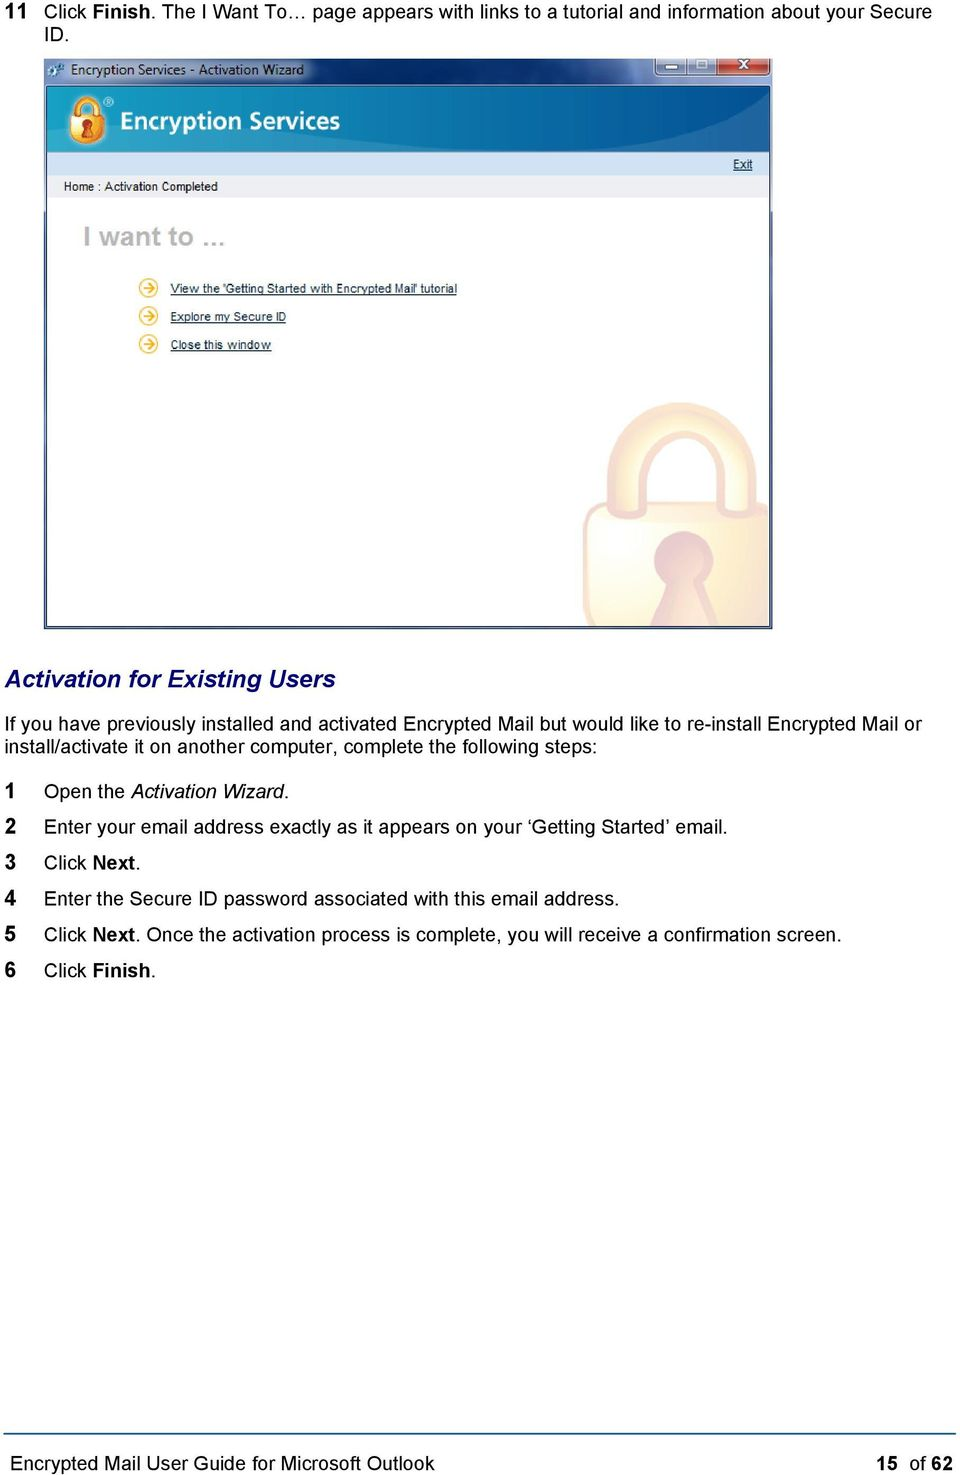 Encrypted Mail User Guide  for Microsoft Outlook - PDF